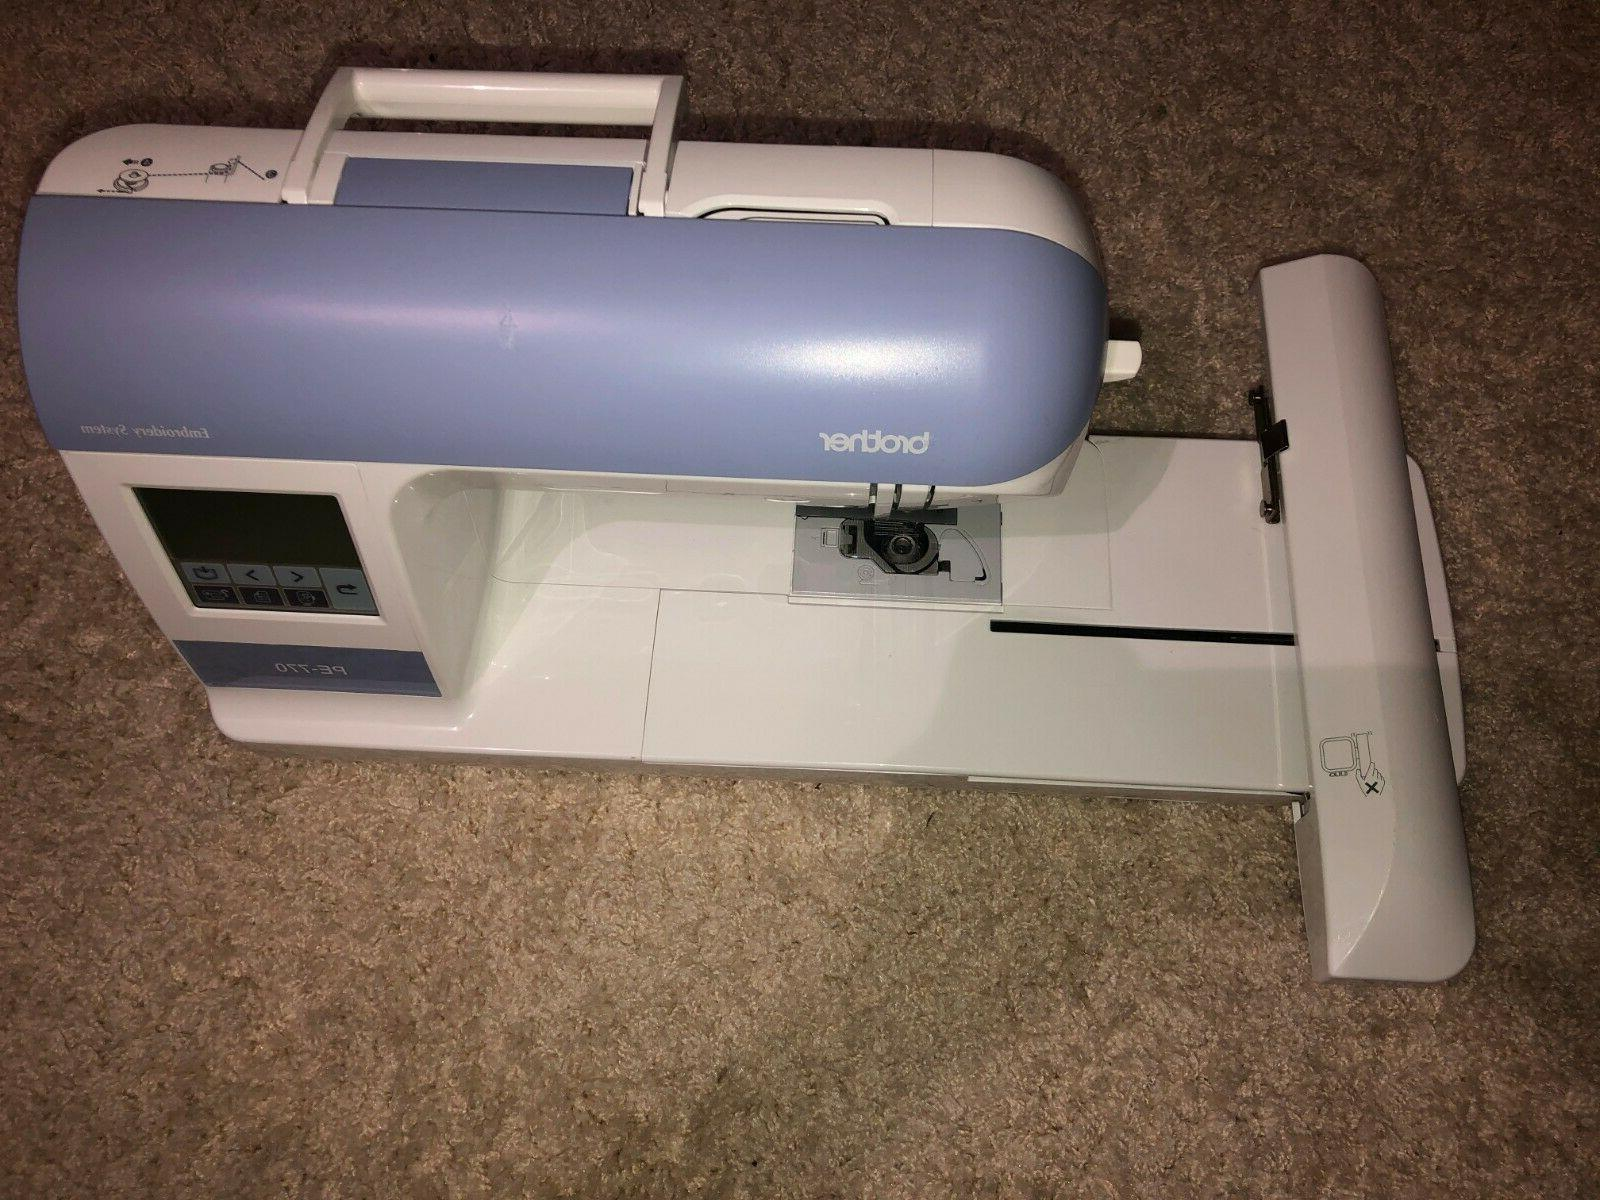 pe 770 computerized embroidery sewing machine built